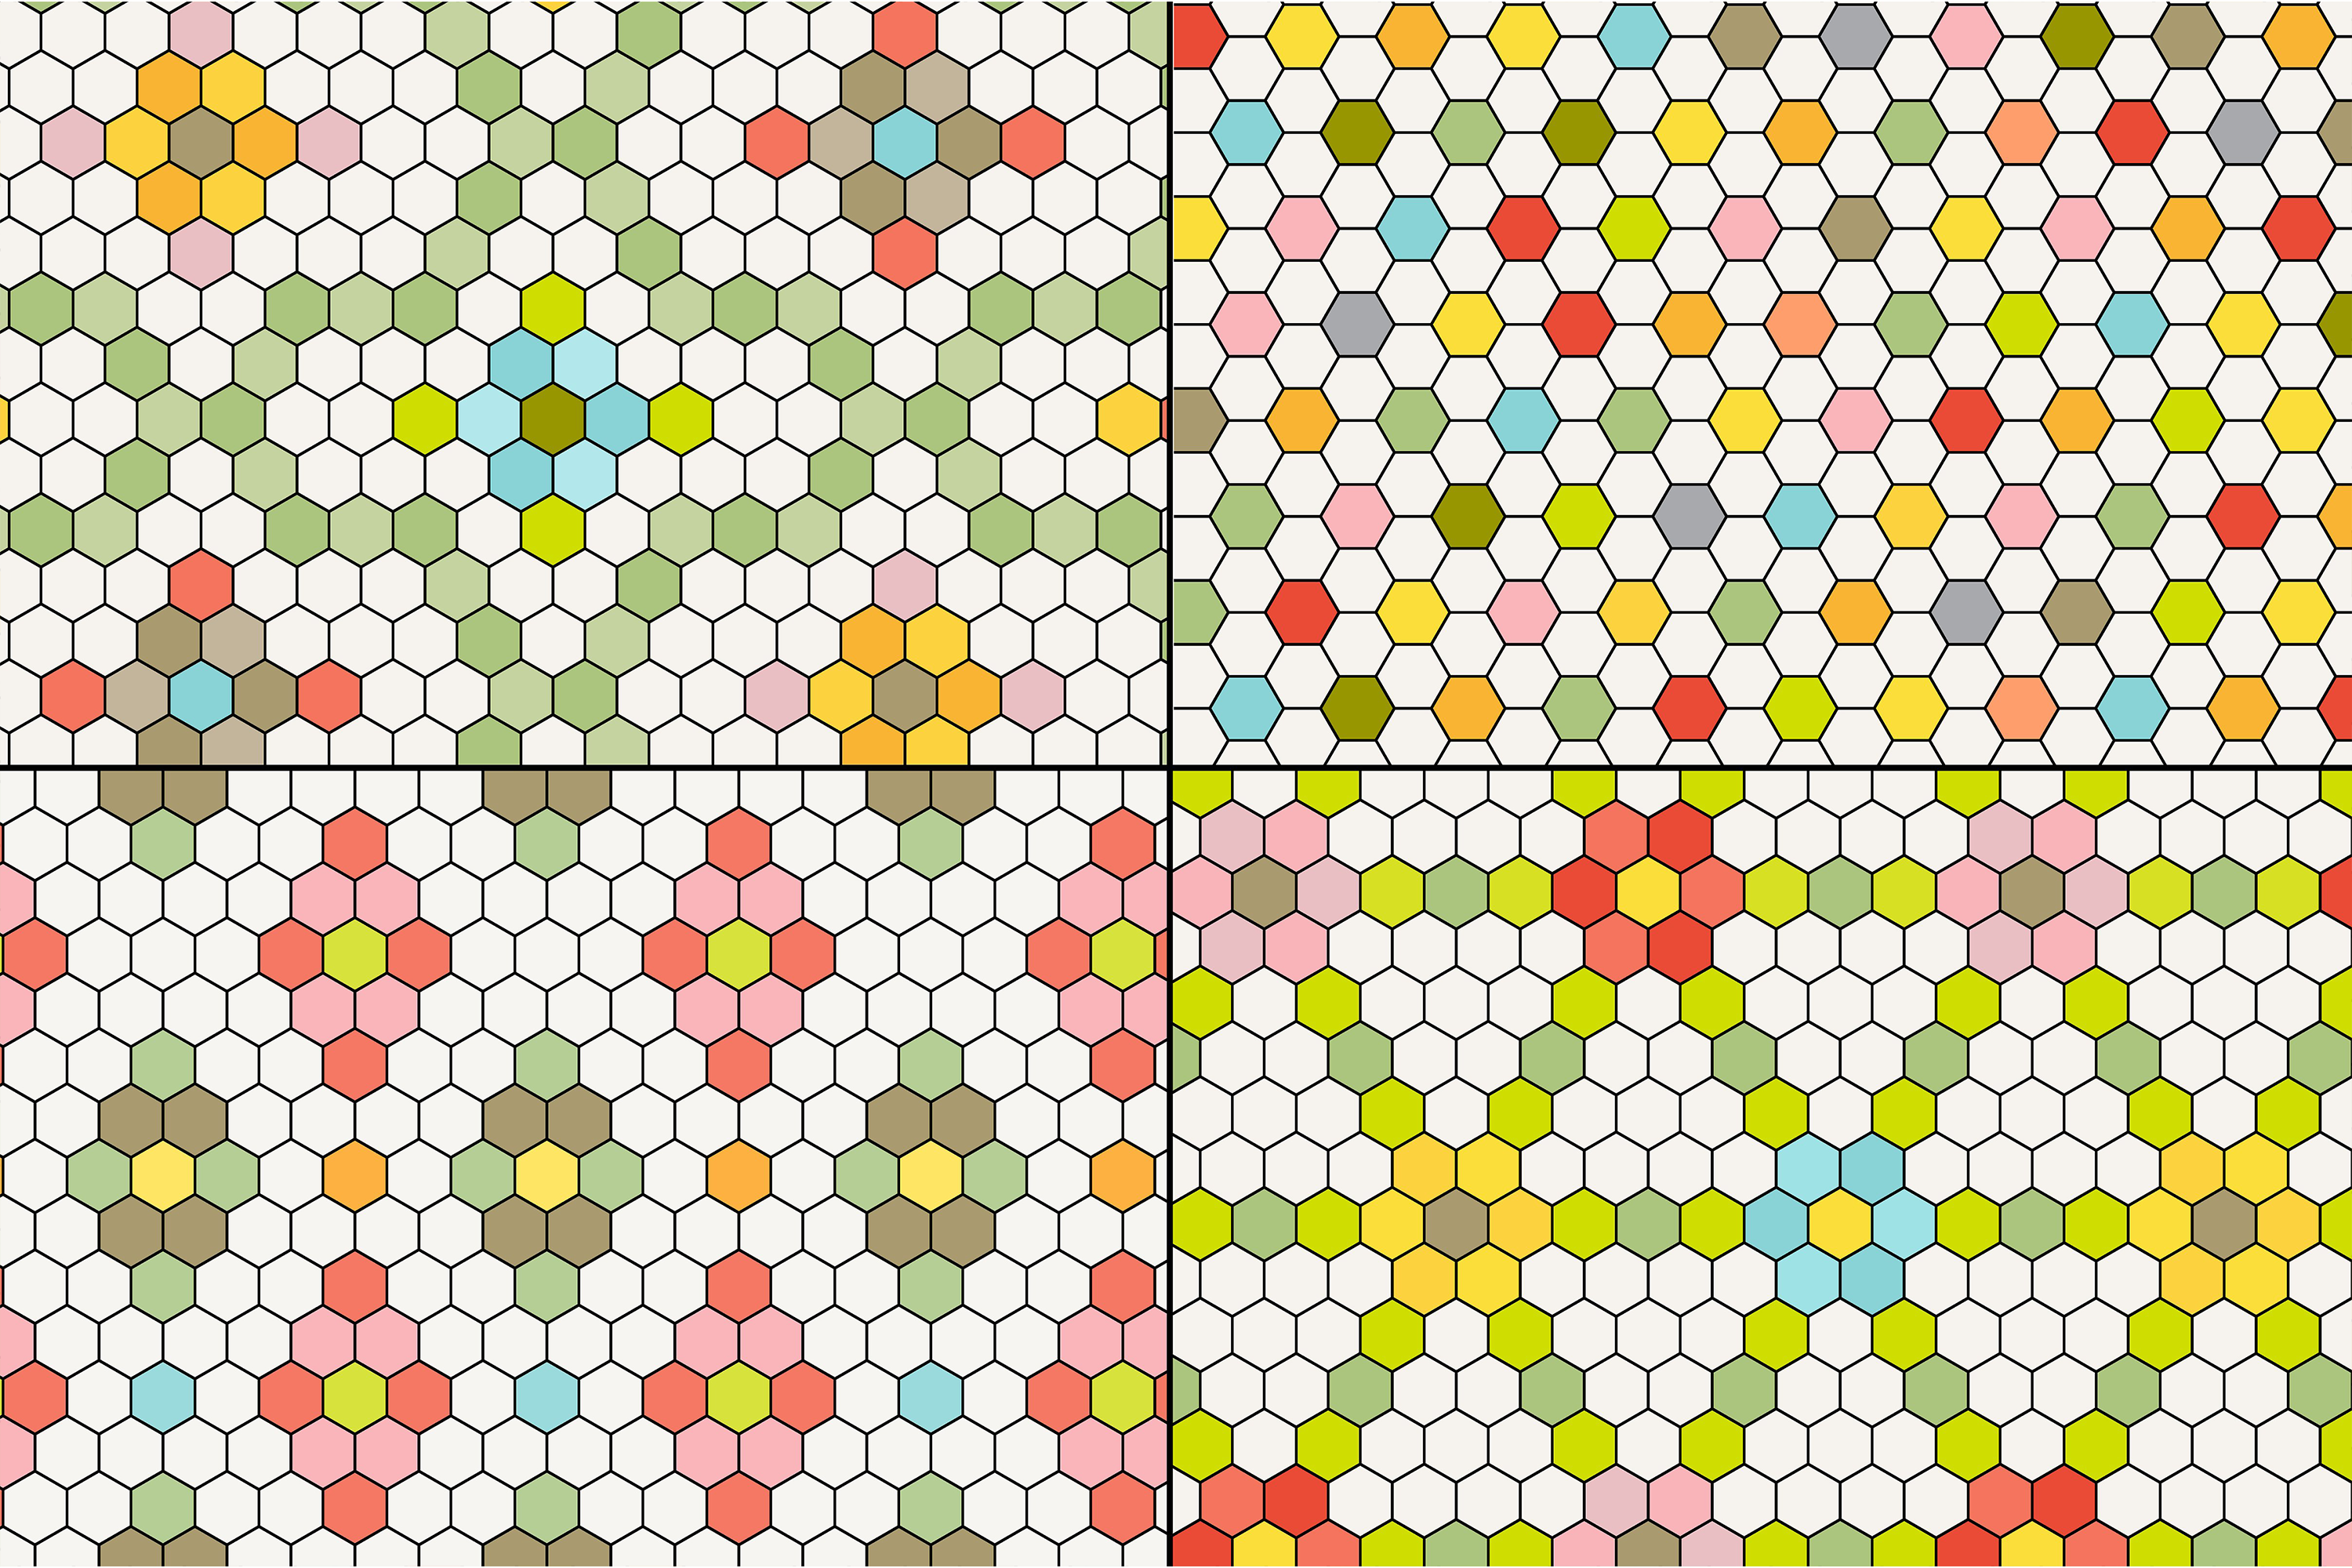 Hexagon Tile Patterns example image 4